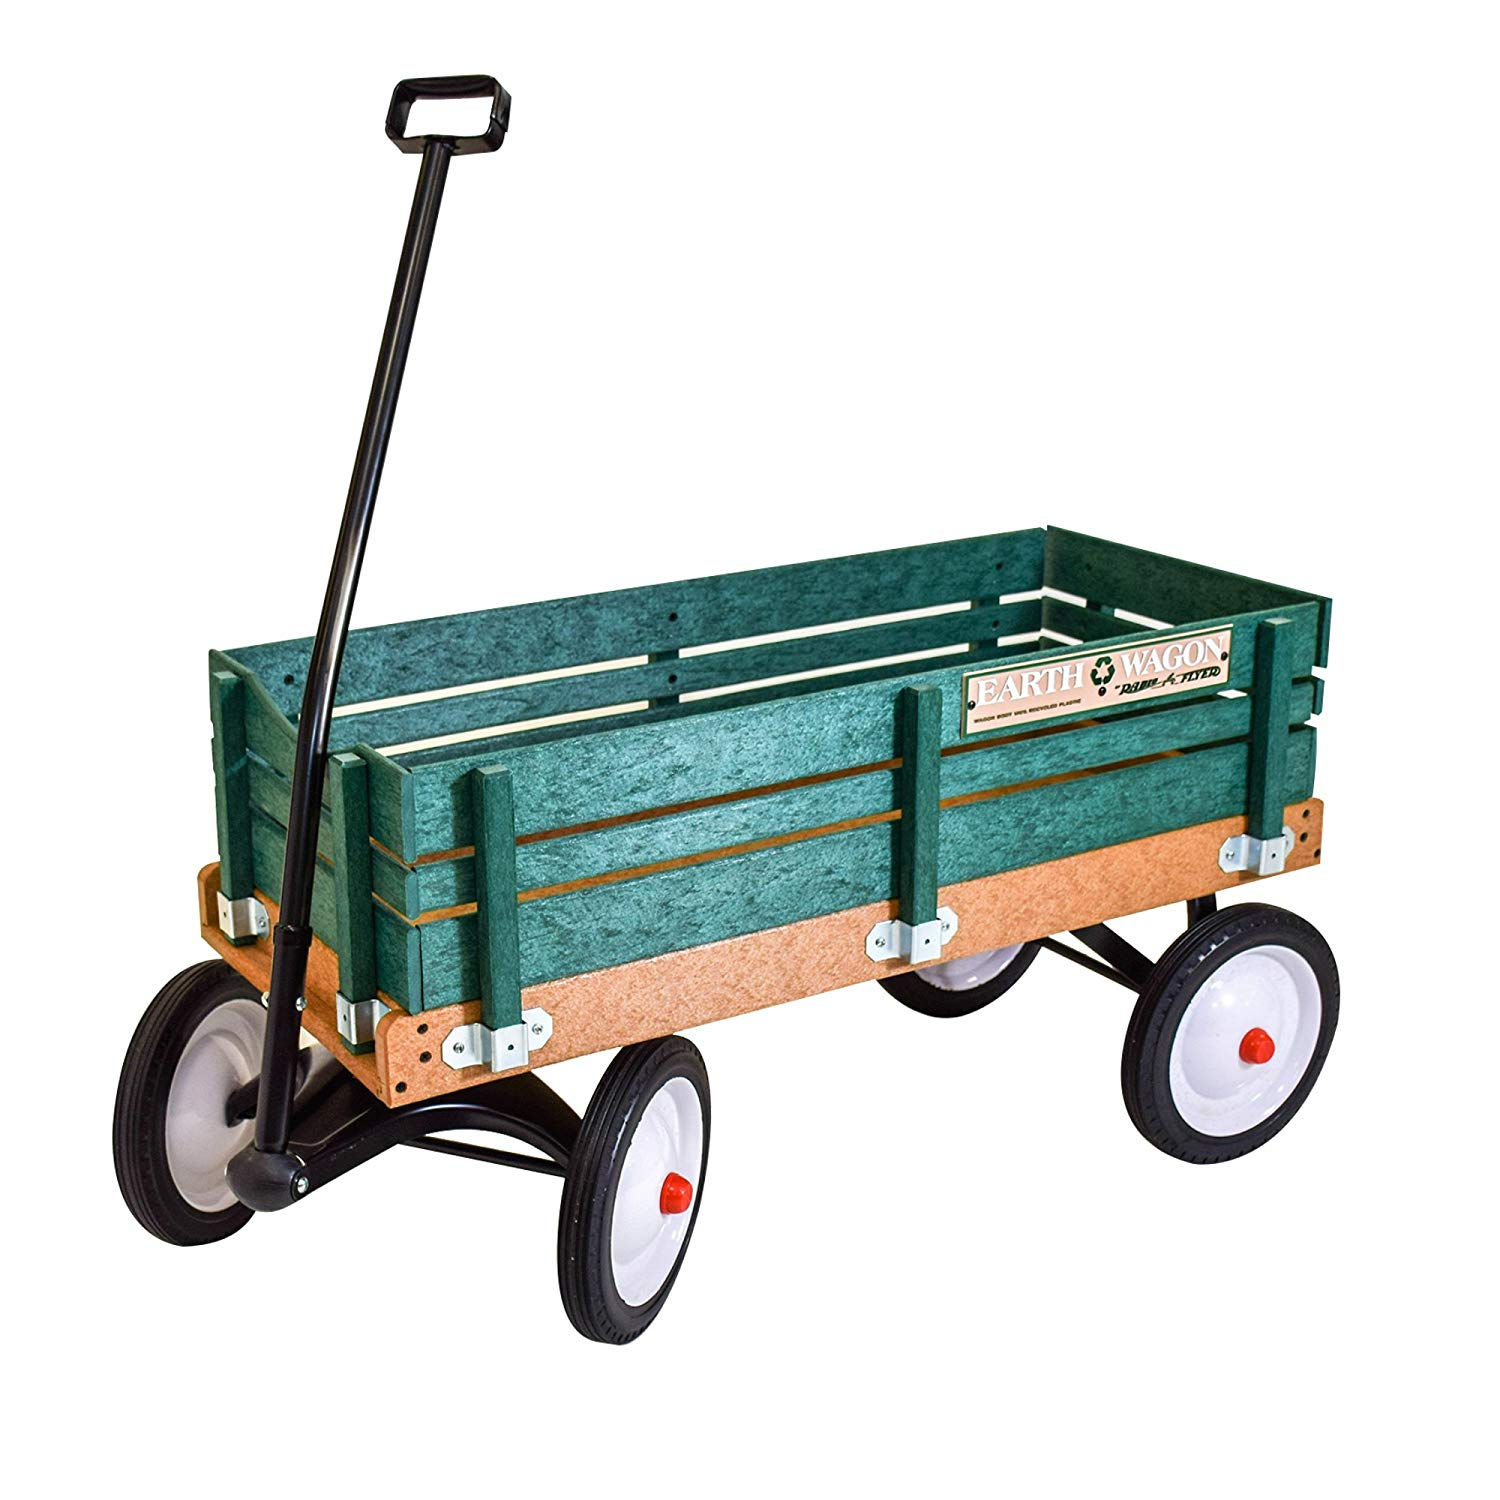 "Radio Flyer Classic Green Earth Wagon Utility cart for Kids, Shopping, Groceries, Gardening | Eco-Friendly Recycled Plastic Sides & Bed - No Wood - 10"" Steel Wheels with Rubber Tires 